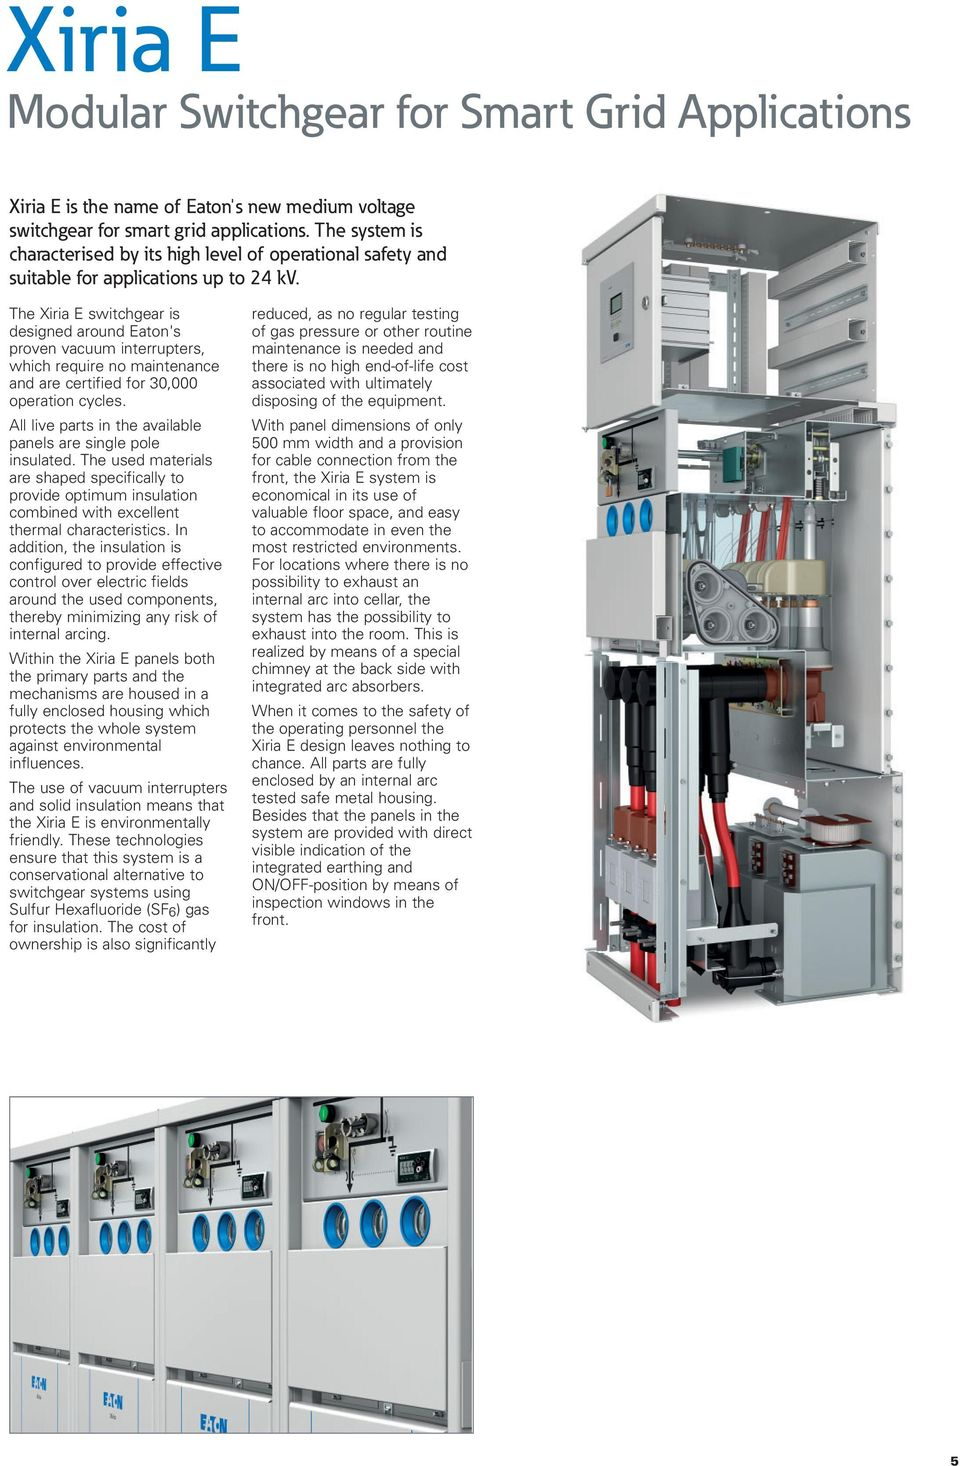 The Xiria E switchgear is designed around Eaton's proven vacuum interrupters, which require no maintenance and are certified for 30,000 operation cycles.